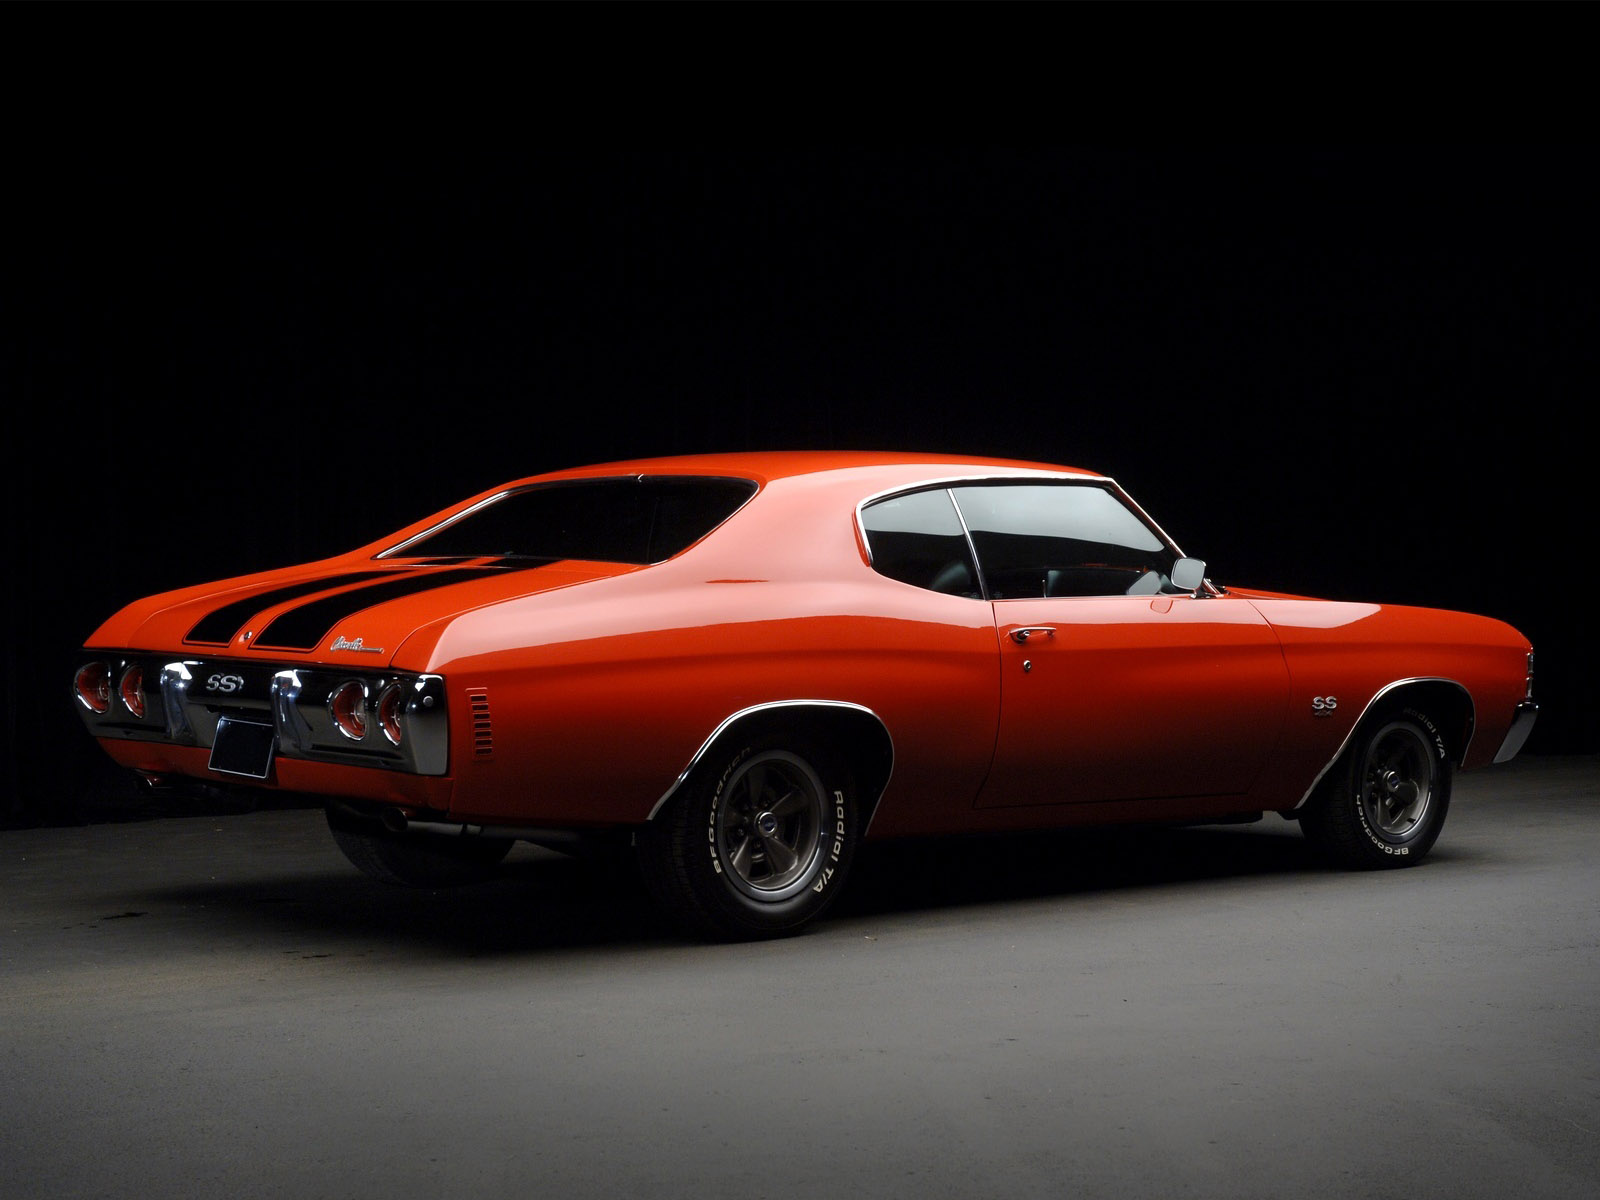 1971 Chevrolet Chevelle S-S classic muscle f wallpaper   1600x1200   108729   WallpaperUP